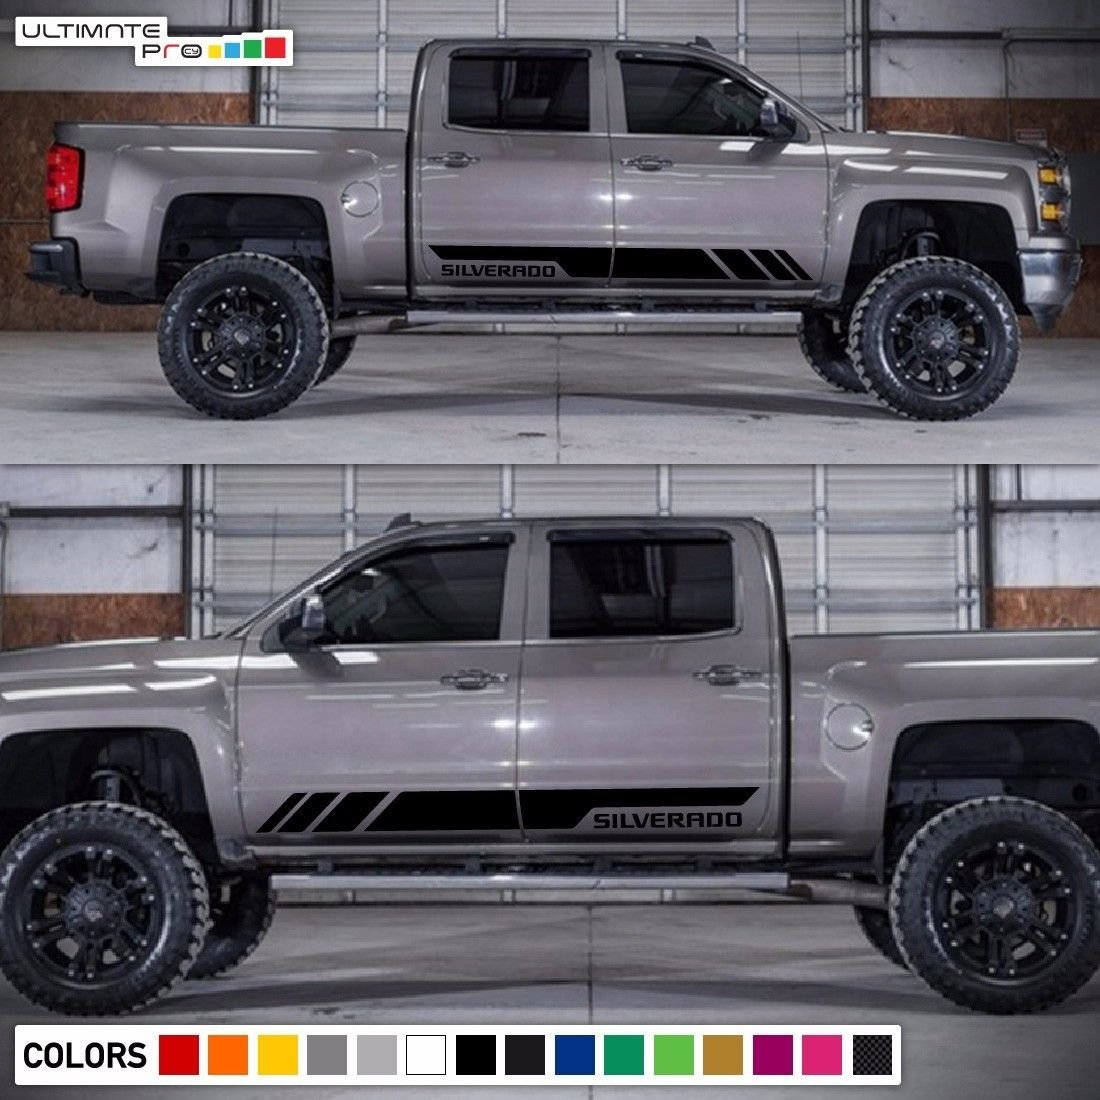 Bubbles Designs Decal Sticker Side Stripes Set For 2015 Chevy Silverado Truck Accessories Chevrolet 2014 2017 Automotive